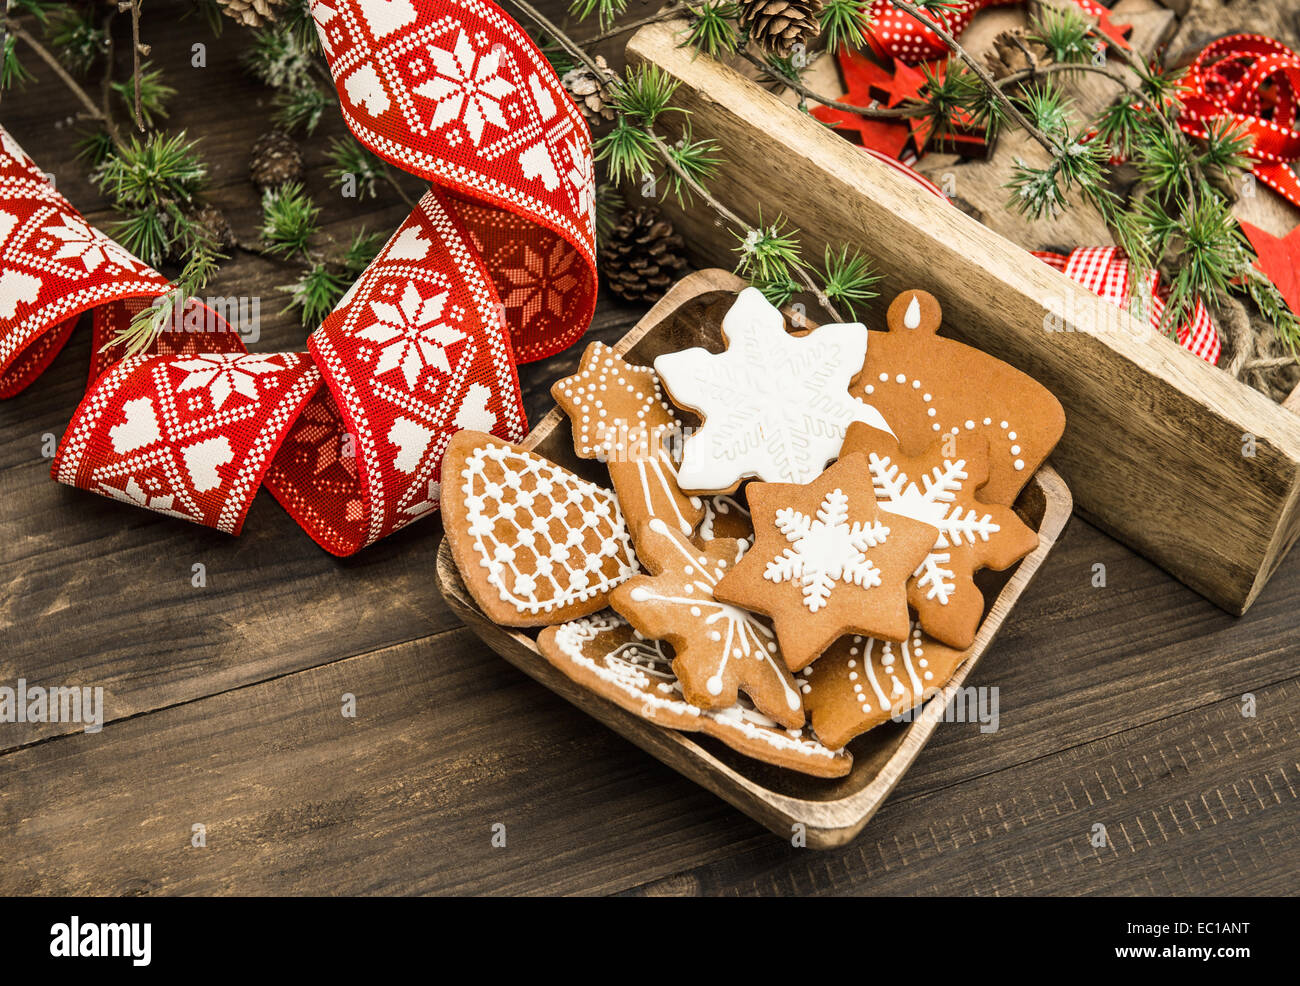 Vintage looking christmas ornaments - Stock Photo Christmas Ornaments And Gingerbread Cookies Vintage Style Home Decoration